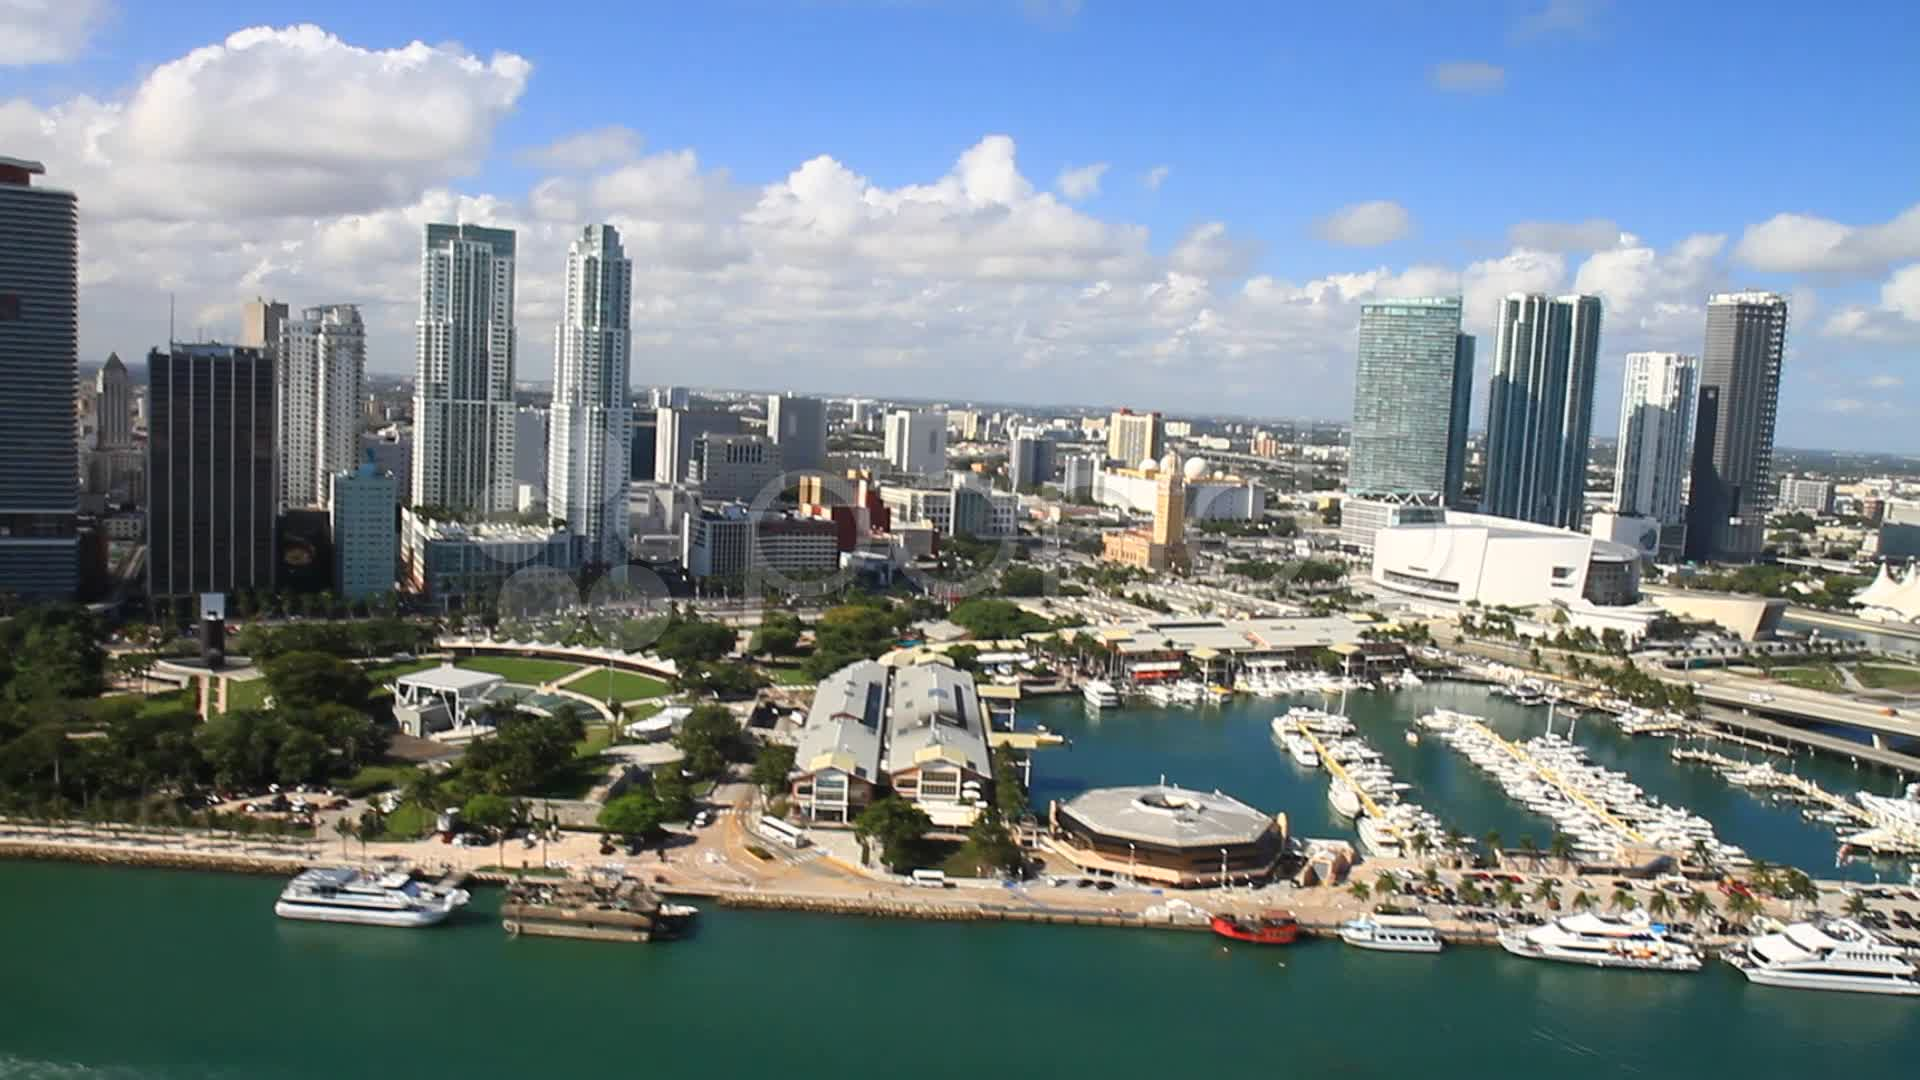 Usa Hd Wallpaper Download Aerial View Of Bayside Marketplace Miami Fl Clip